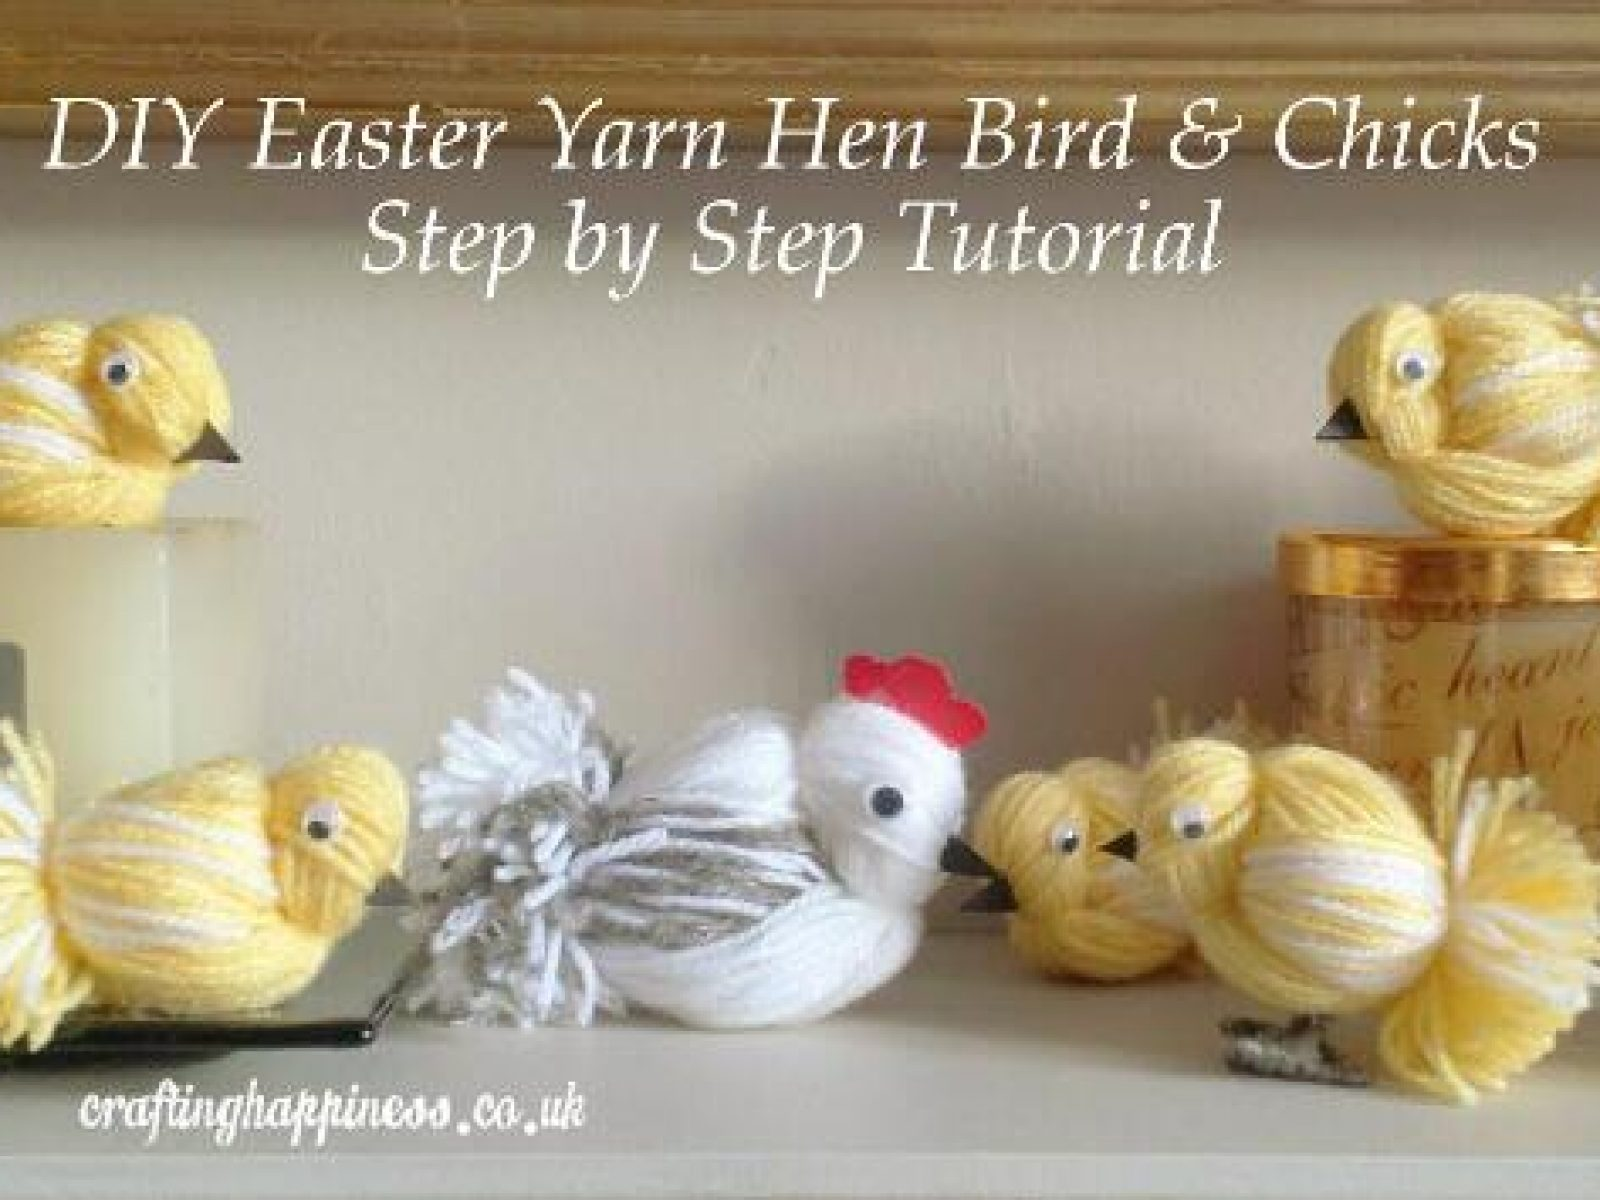 DIY Easter Yarn Hen Bird & Chicks Step by Step Tutorial